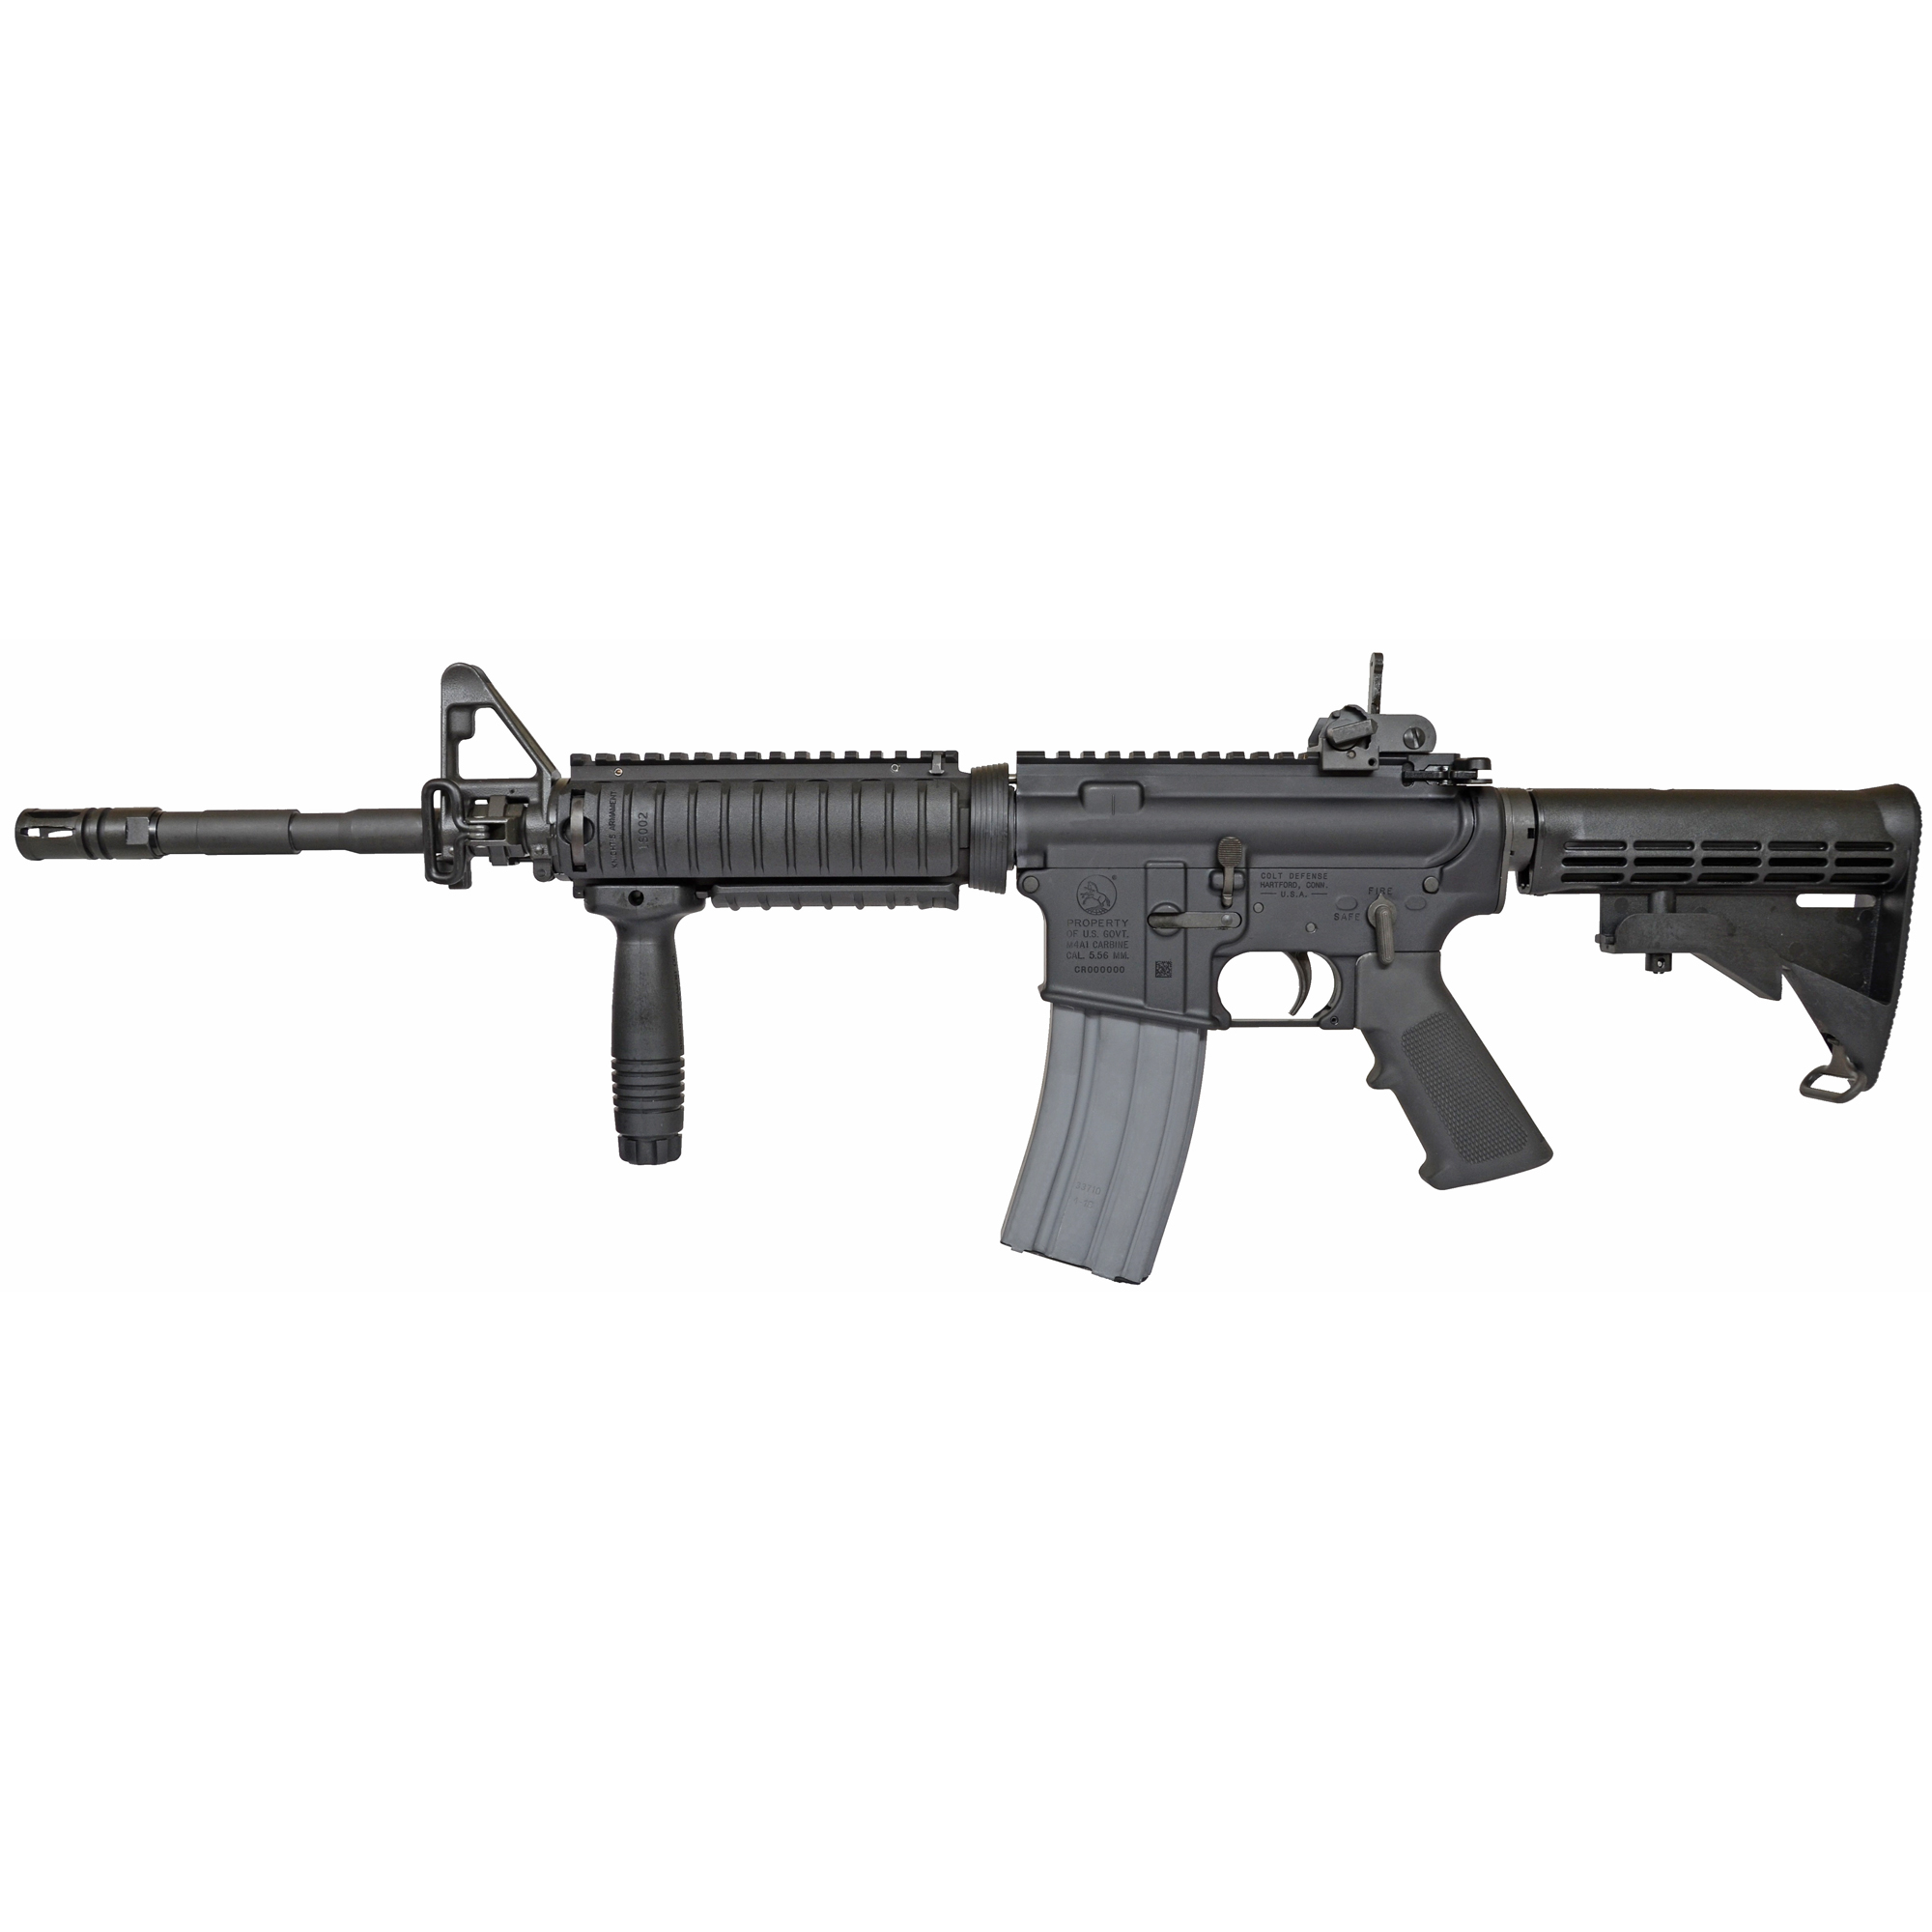 "The Colt M4A1 SOCOM Carbine returns for 2018. This classic US Military Reproduction closely replicates the markings and configuration of the M4A1 SOCOM Carbine. The lower receiver features PROPERTY OF THE US GOVT"" M4A1 CARBINE"" and CAL. 5.56 MM. The barrel is a true SOCOM 14.5 heavy barrel with the iconic M203 flats under the Knights Armament Rail System. Extended flash hider has been pinned and welded to achieve a non-NFA length of 16.1"". Includes the side sling swivel at the gas block and an ambidextrous safety selector. This reproduction is sure to turn heads."